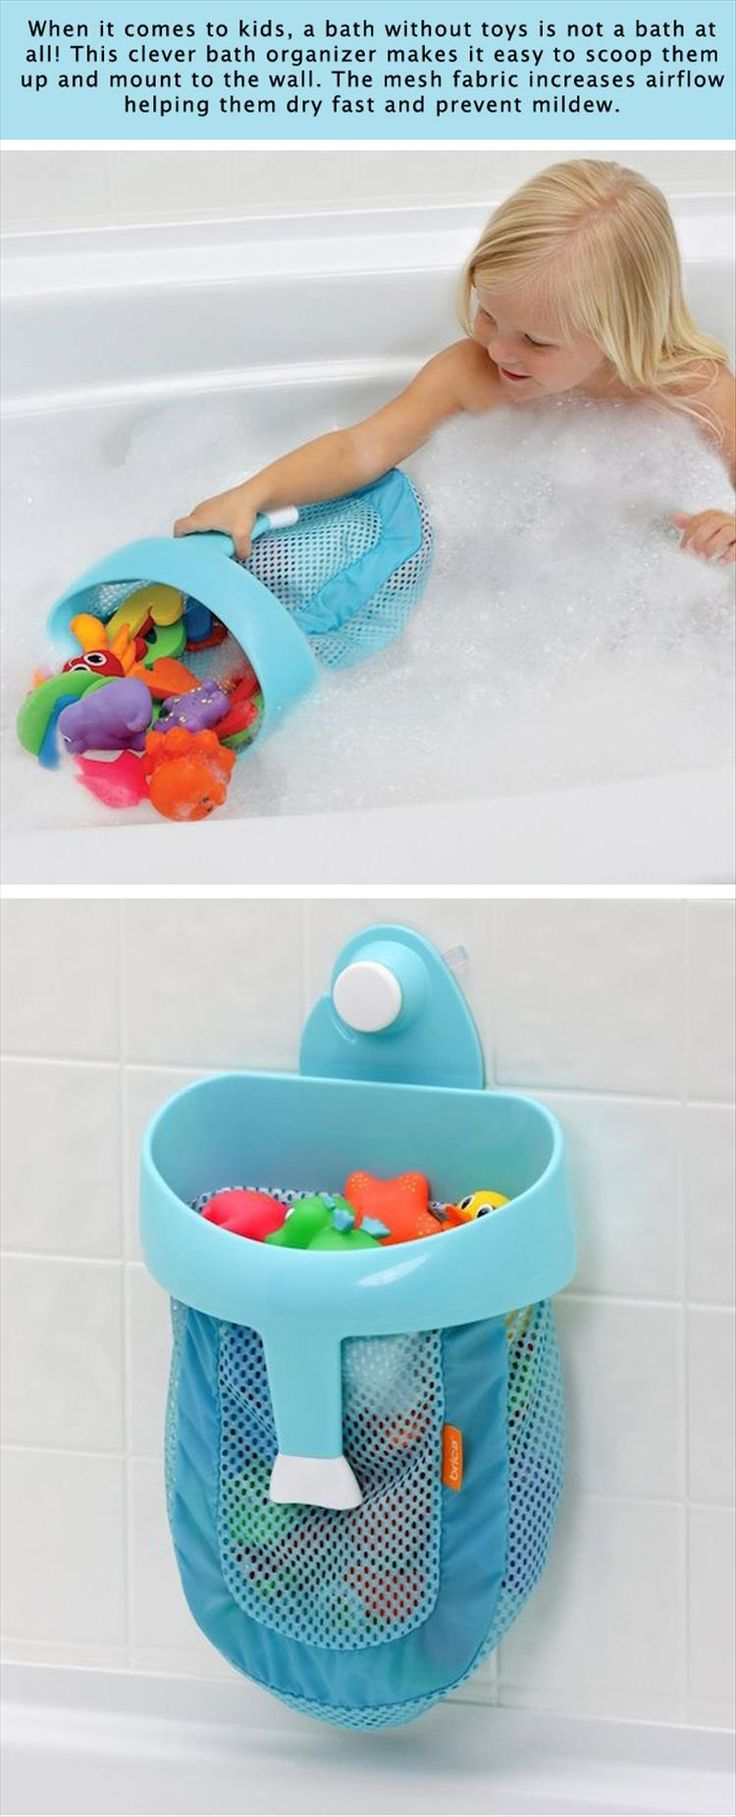 Inventions for kids to make at home easy for Bathroom ideas kid inventions